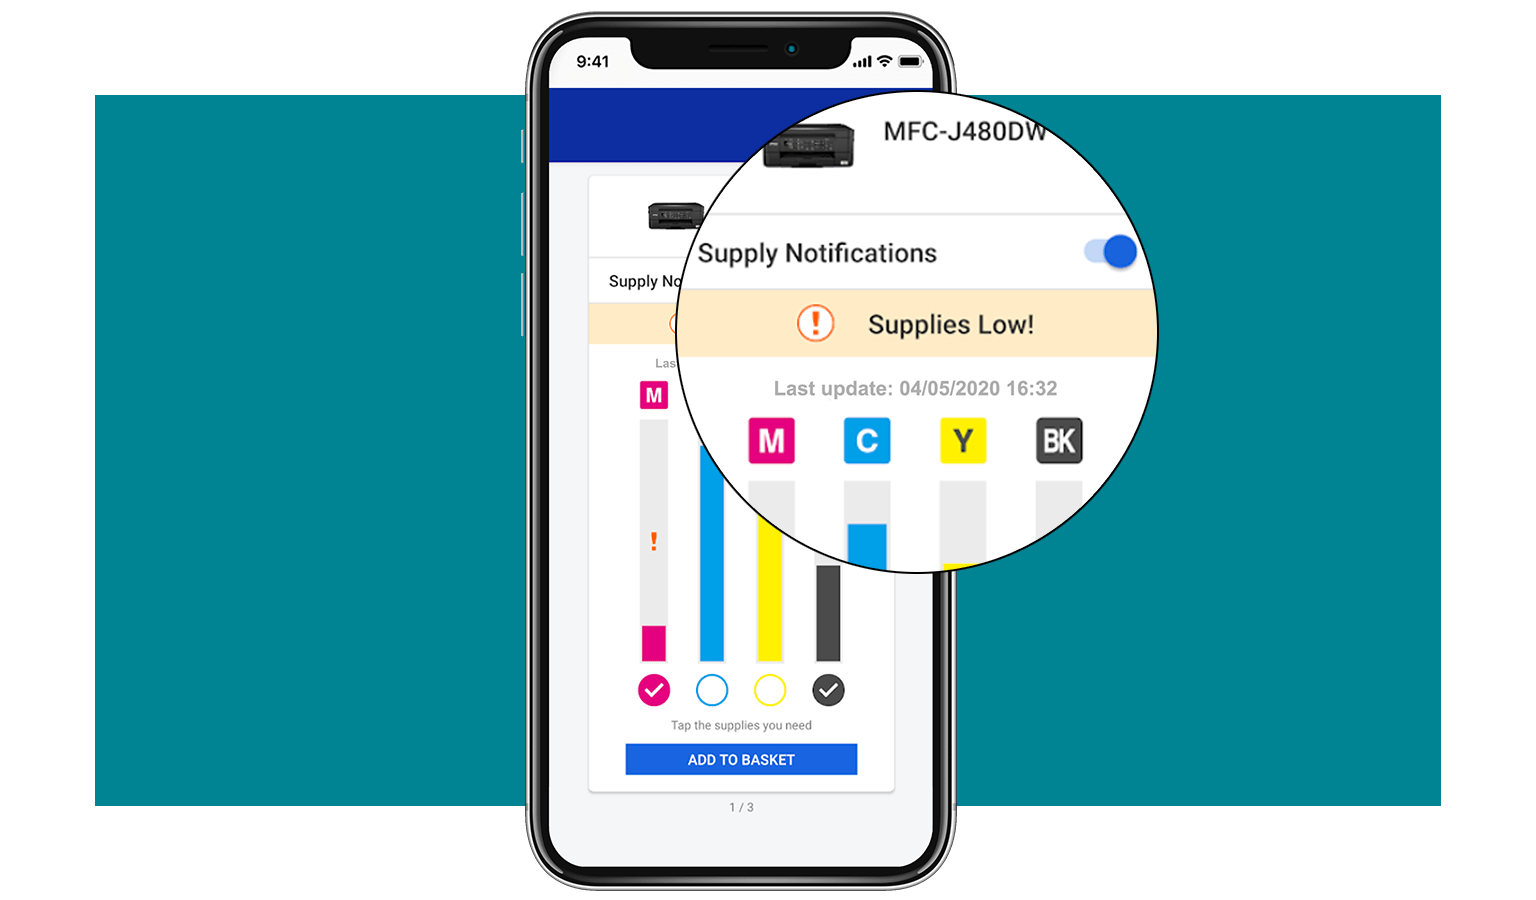 My-Supplies-FeaturesModules-Notifications-png